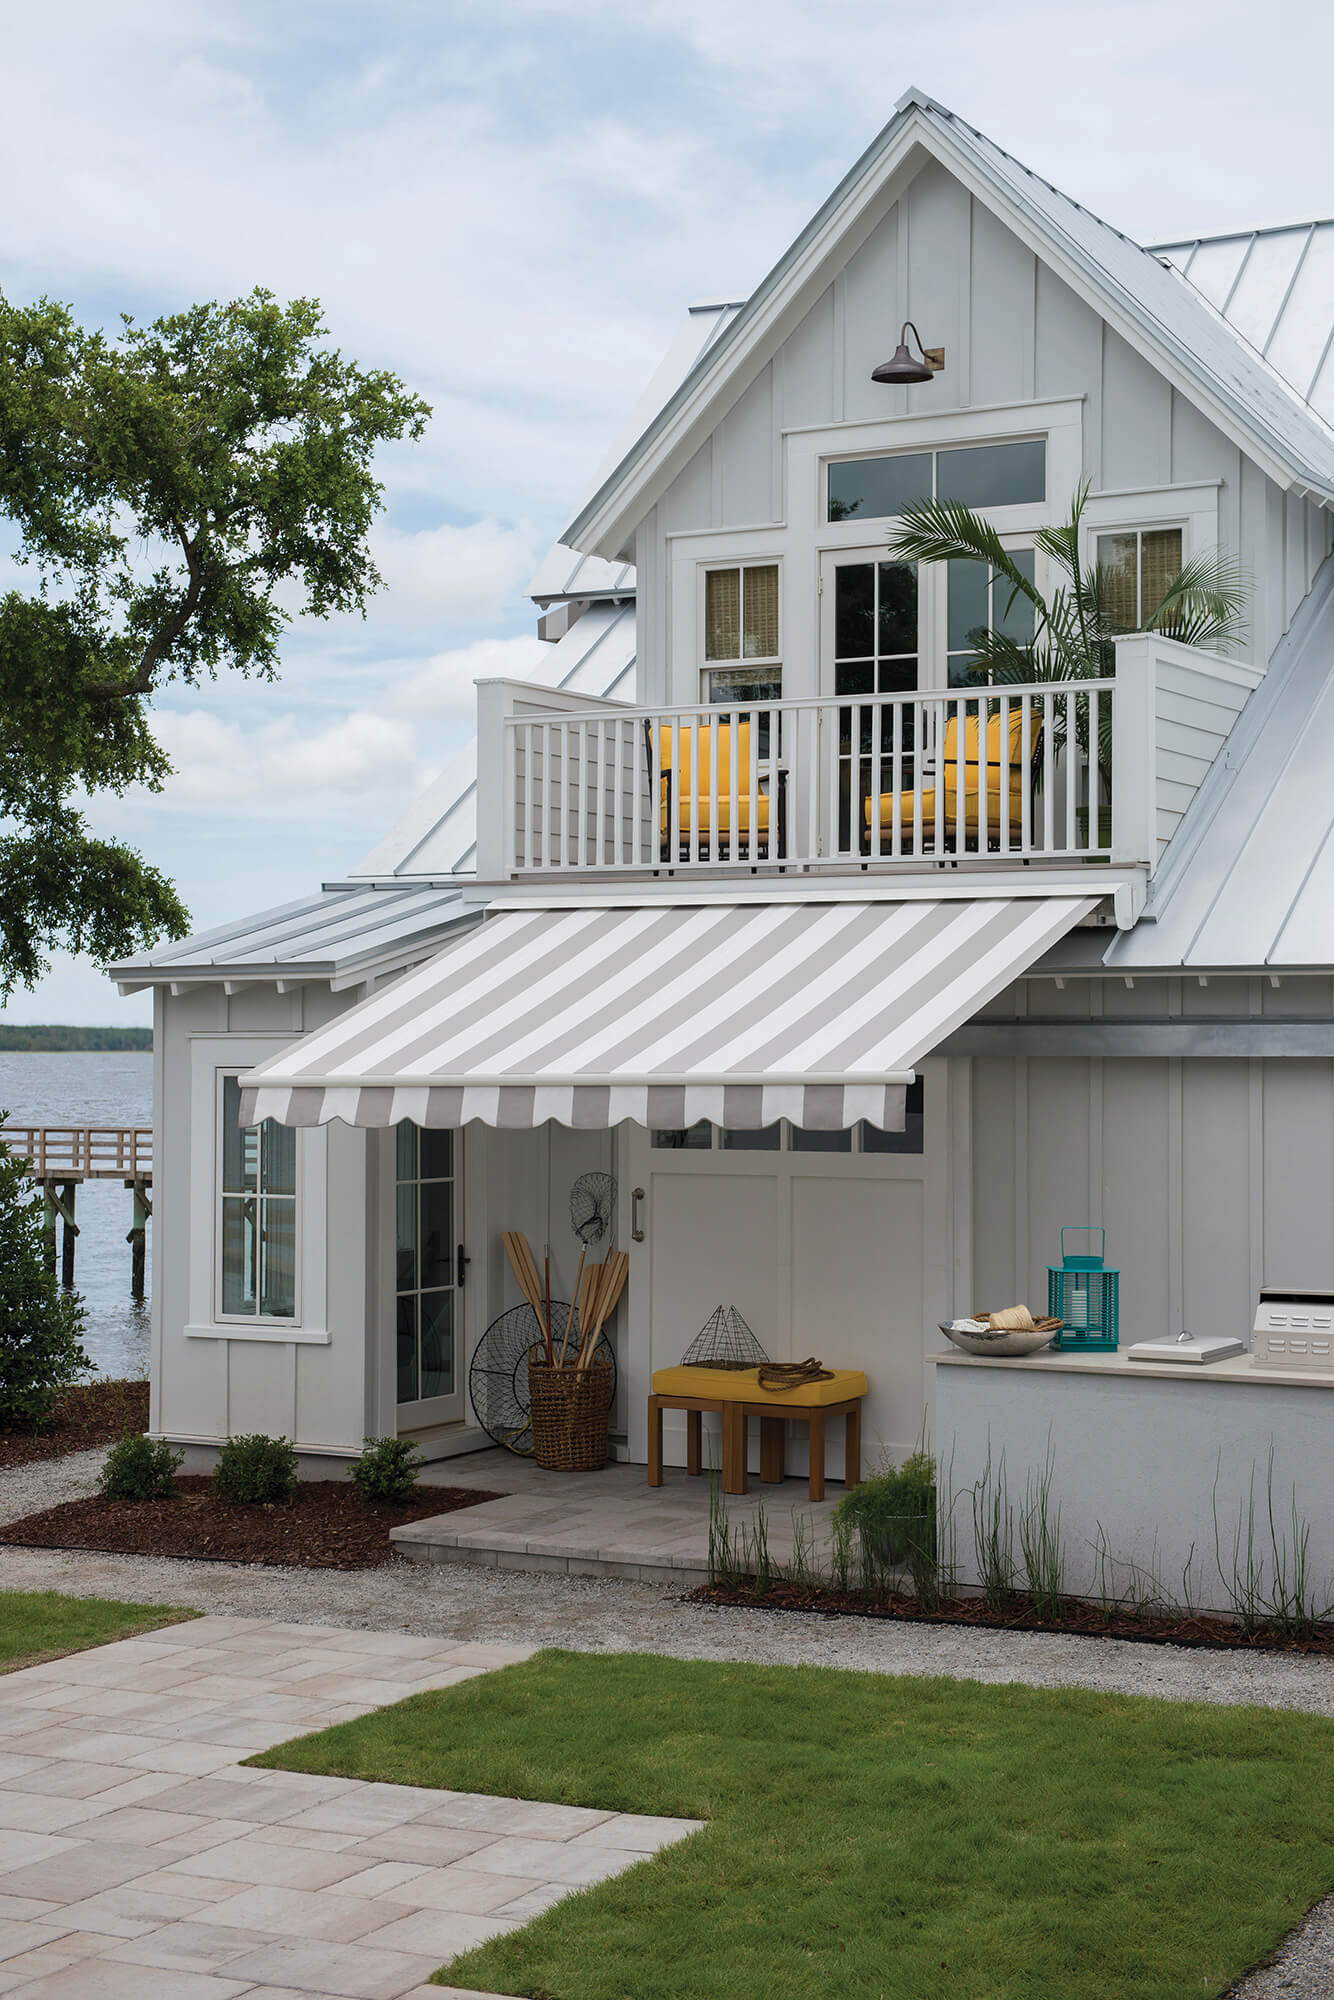 Image of: Sunbrella Retractable Awning Models